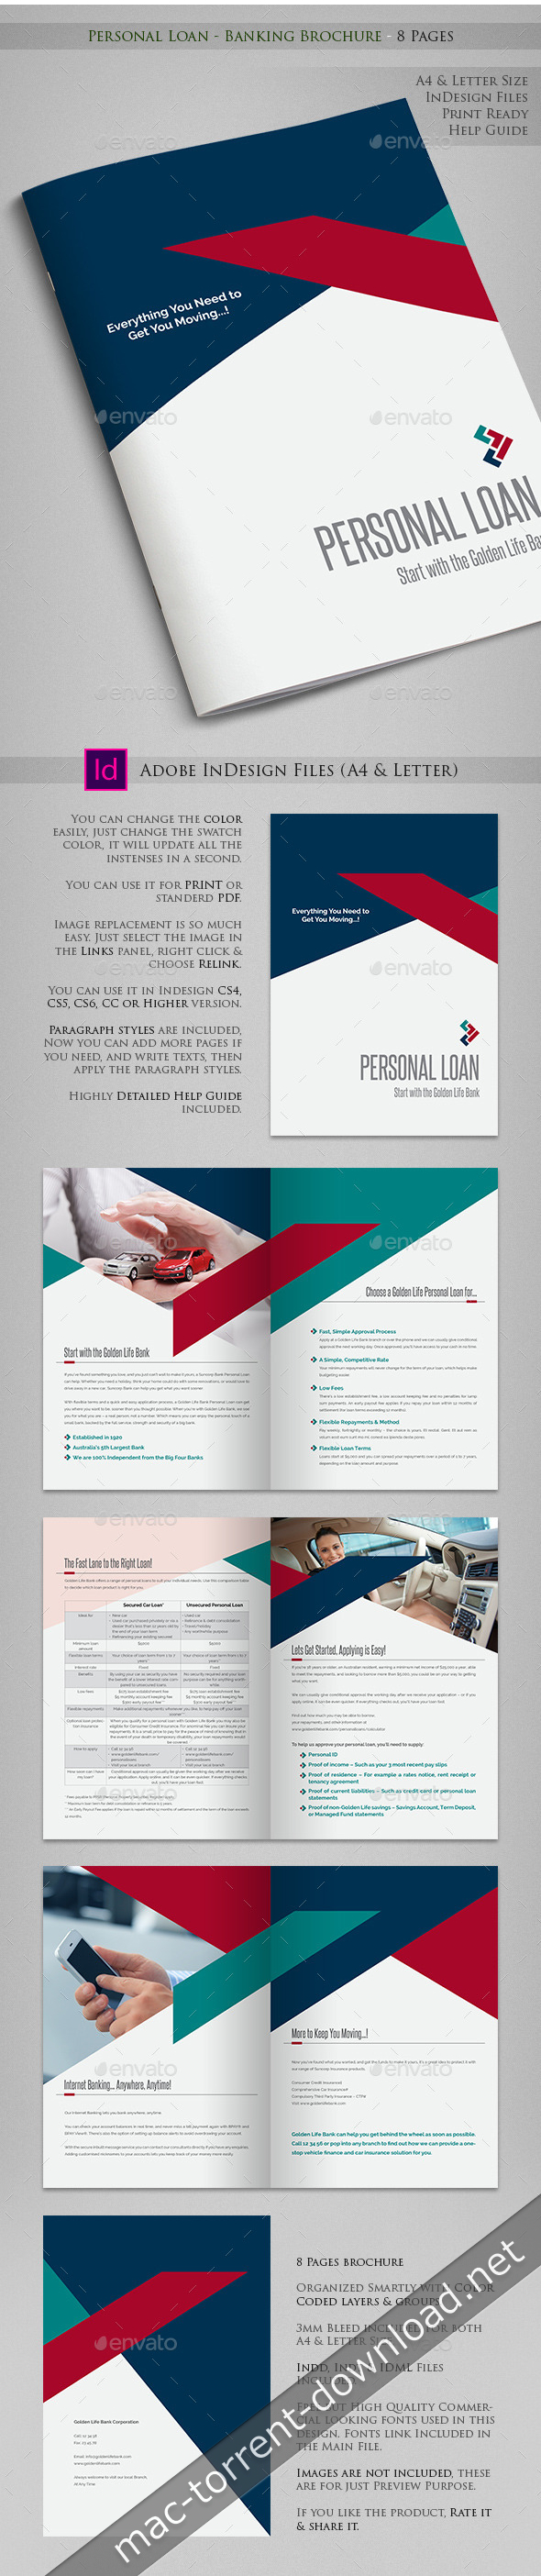 graphicriver_personal_loan_banking_brochure_8_pages_13001947